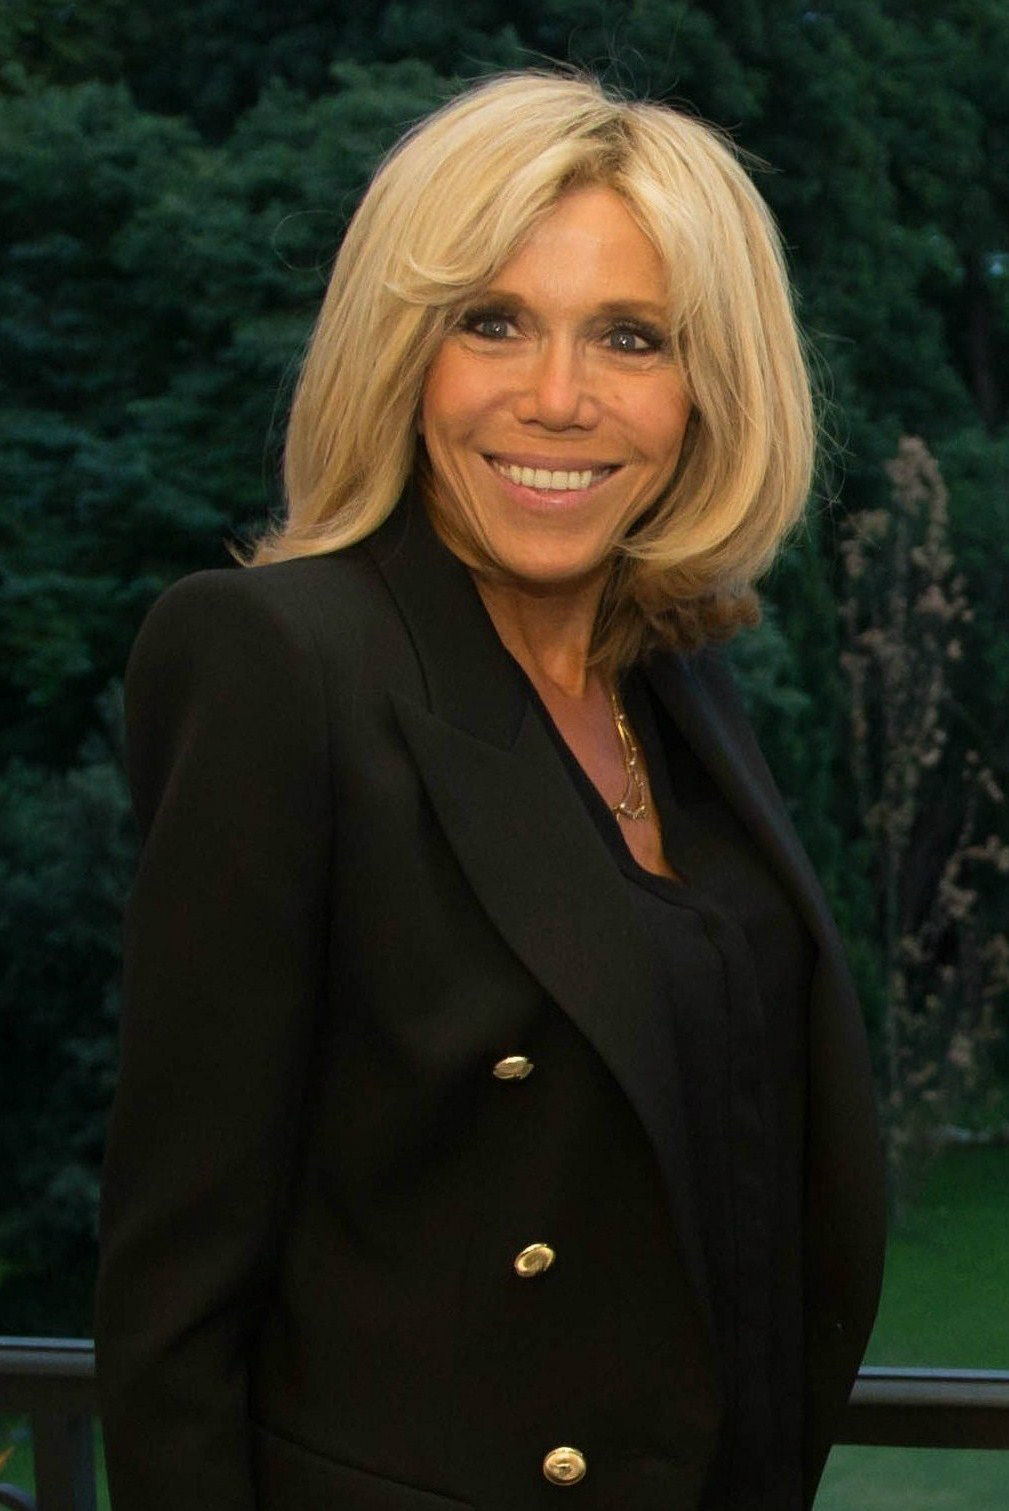 brigitte macron wikipedia la enciclopedia libre. Black Bedroom Furniture Sets. Home Design Ideas